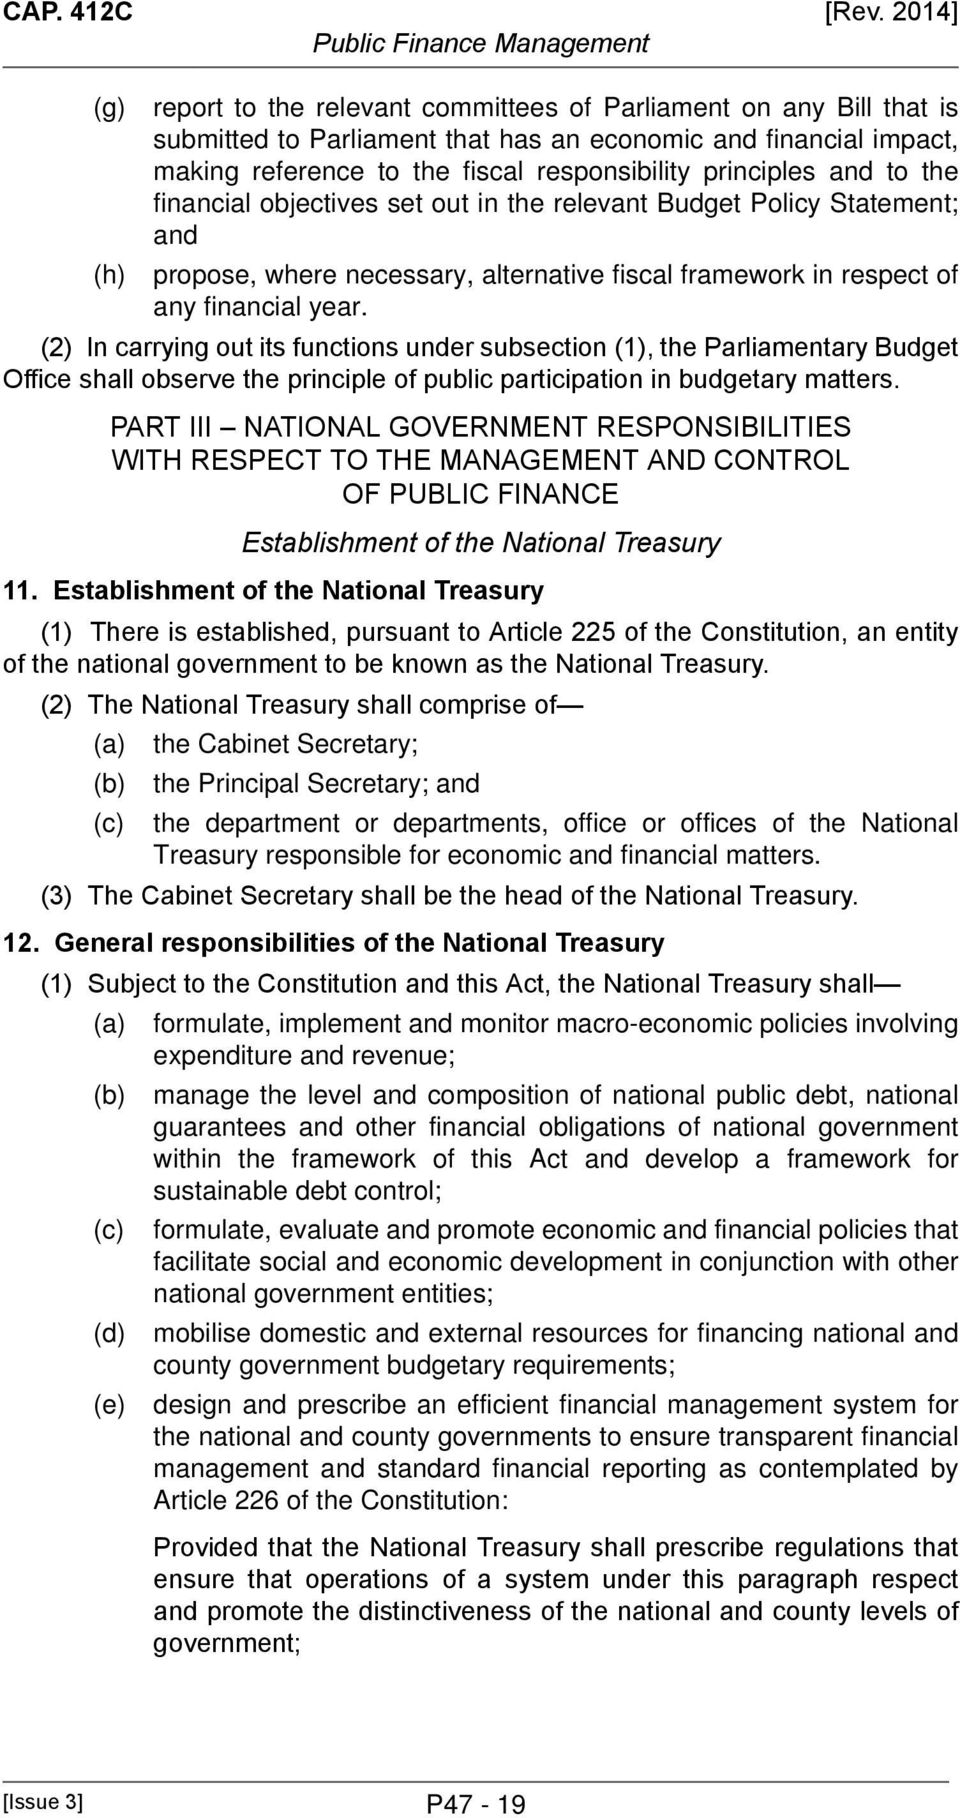 principles and to the financial objectives set out in the relevant Budget Policy Statement; and propose, where necessary, alternative fiscal framework in respect of any financial year.